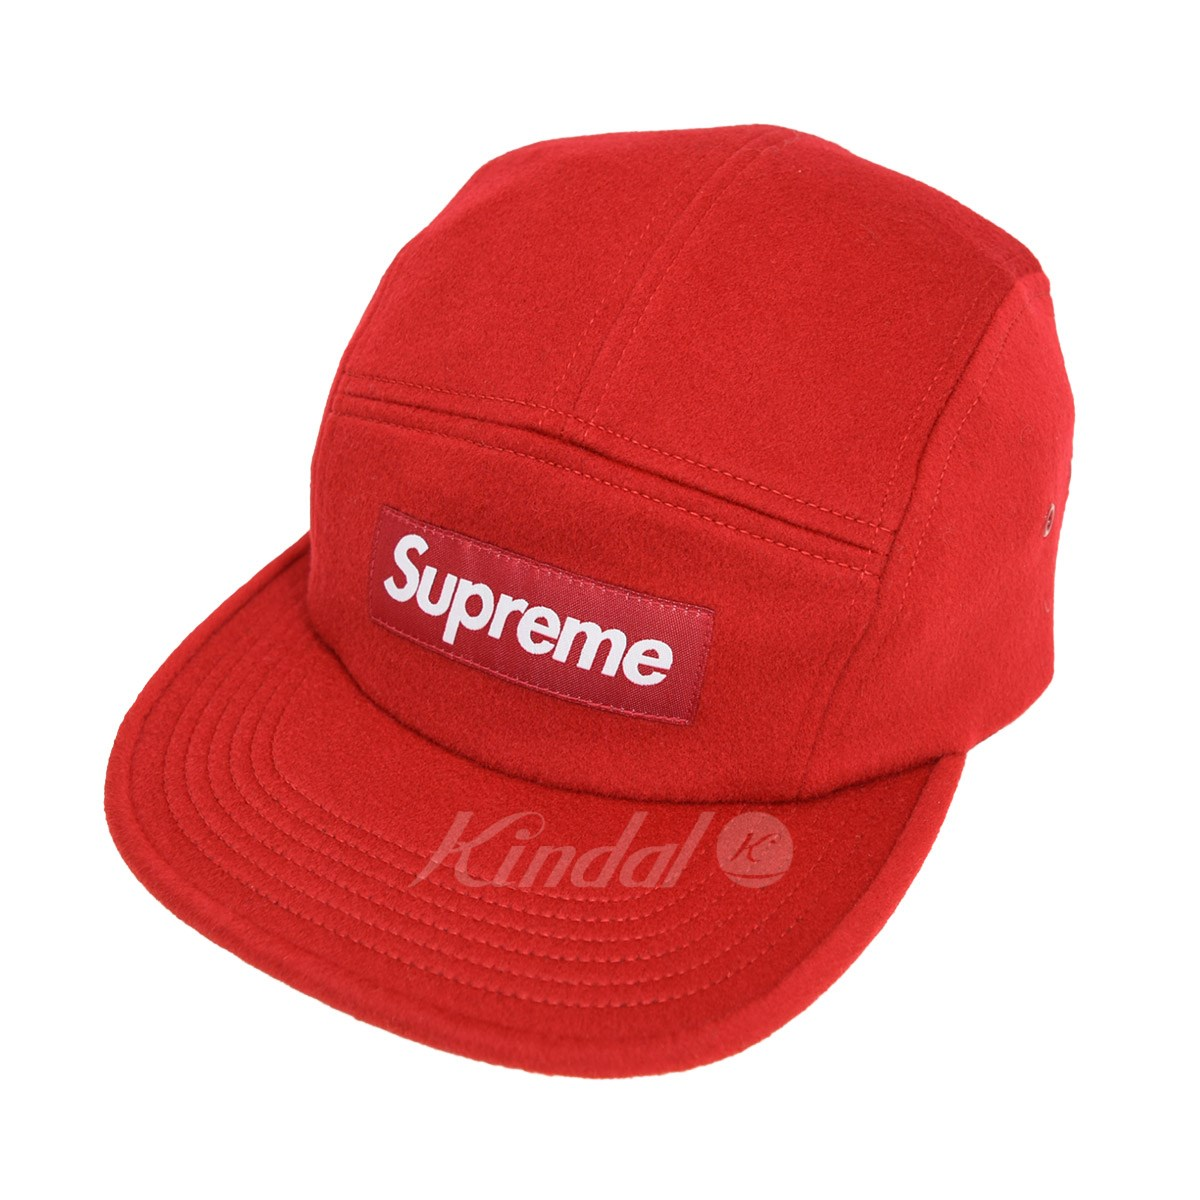 【中古】SUPREME Loro Piana Wool Camp Cap 2017AW 【送料無料】 【011801】 【KIND1641】